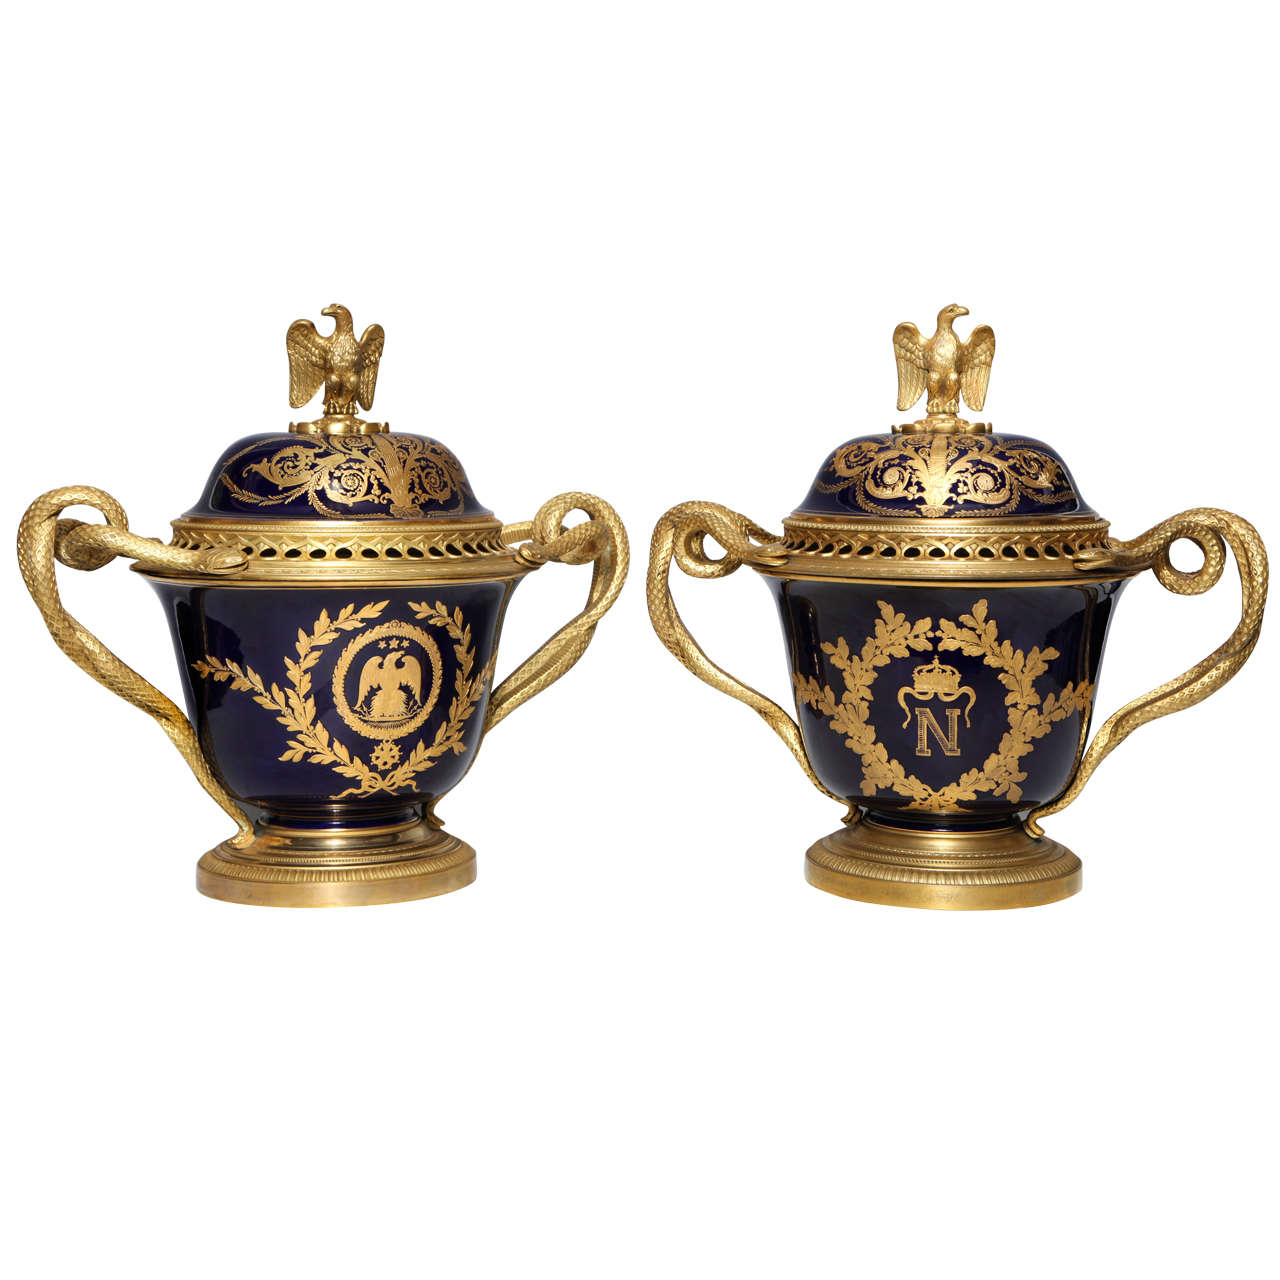 Pair french napoleanic sevres porcelain and ormolu covered vases pair french napoleanic sevres porcelain ormolu covered vasespot pourries for sale reviewsmspy